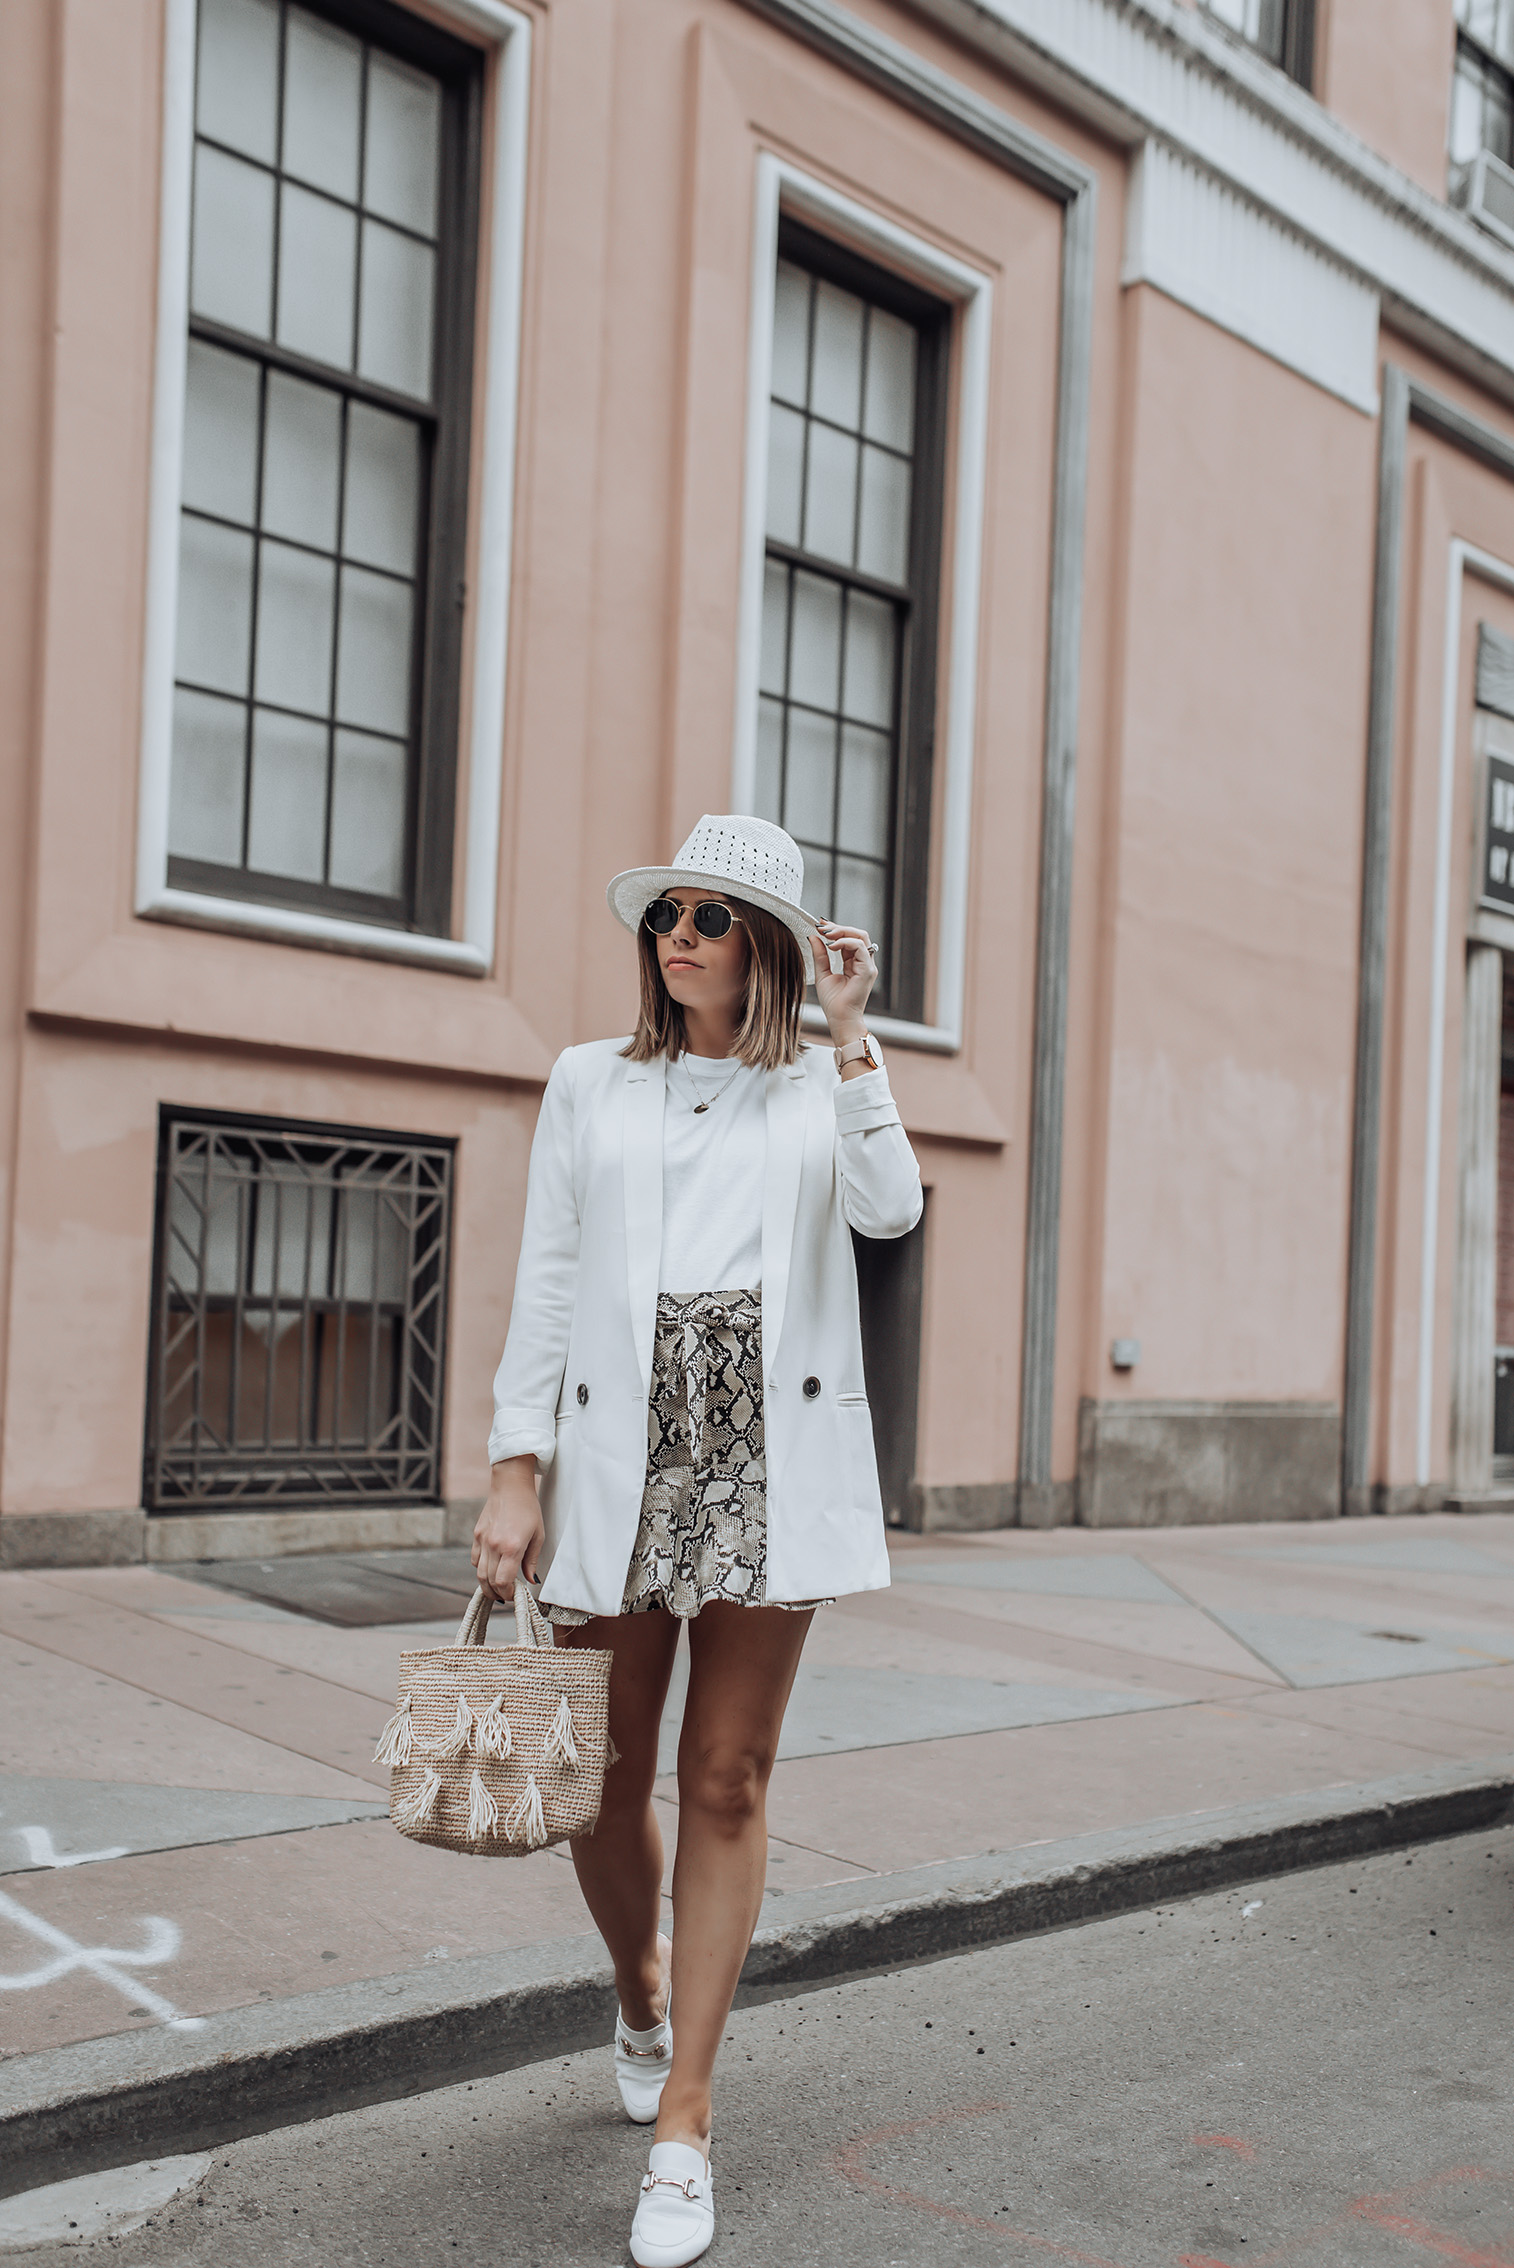 Mixing spring and fall pieces | White mules | Skirt (Zara, similar here) | Similar Hat | White Blazer | Tassel Bag #snakeprint #blazeroutfits #topshop #zara #streetstyle